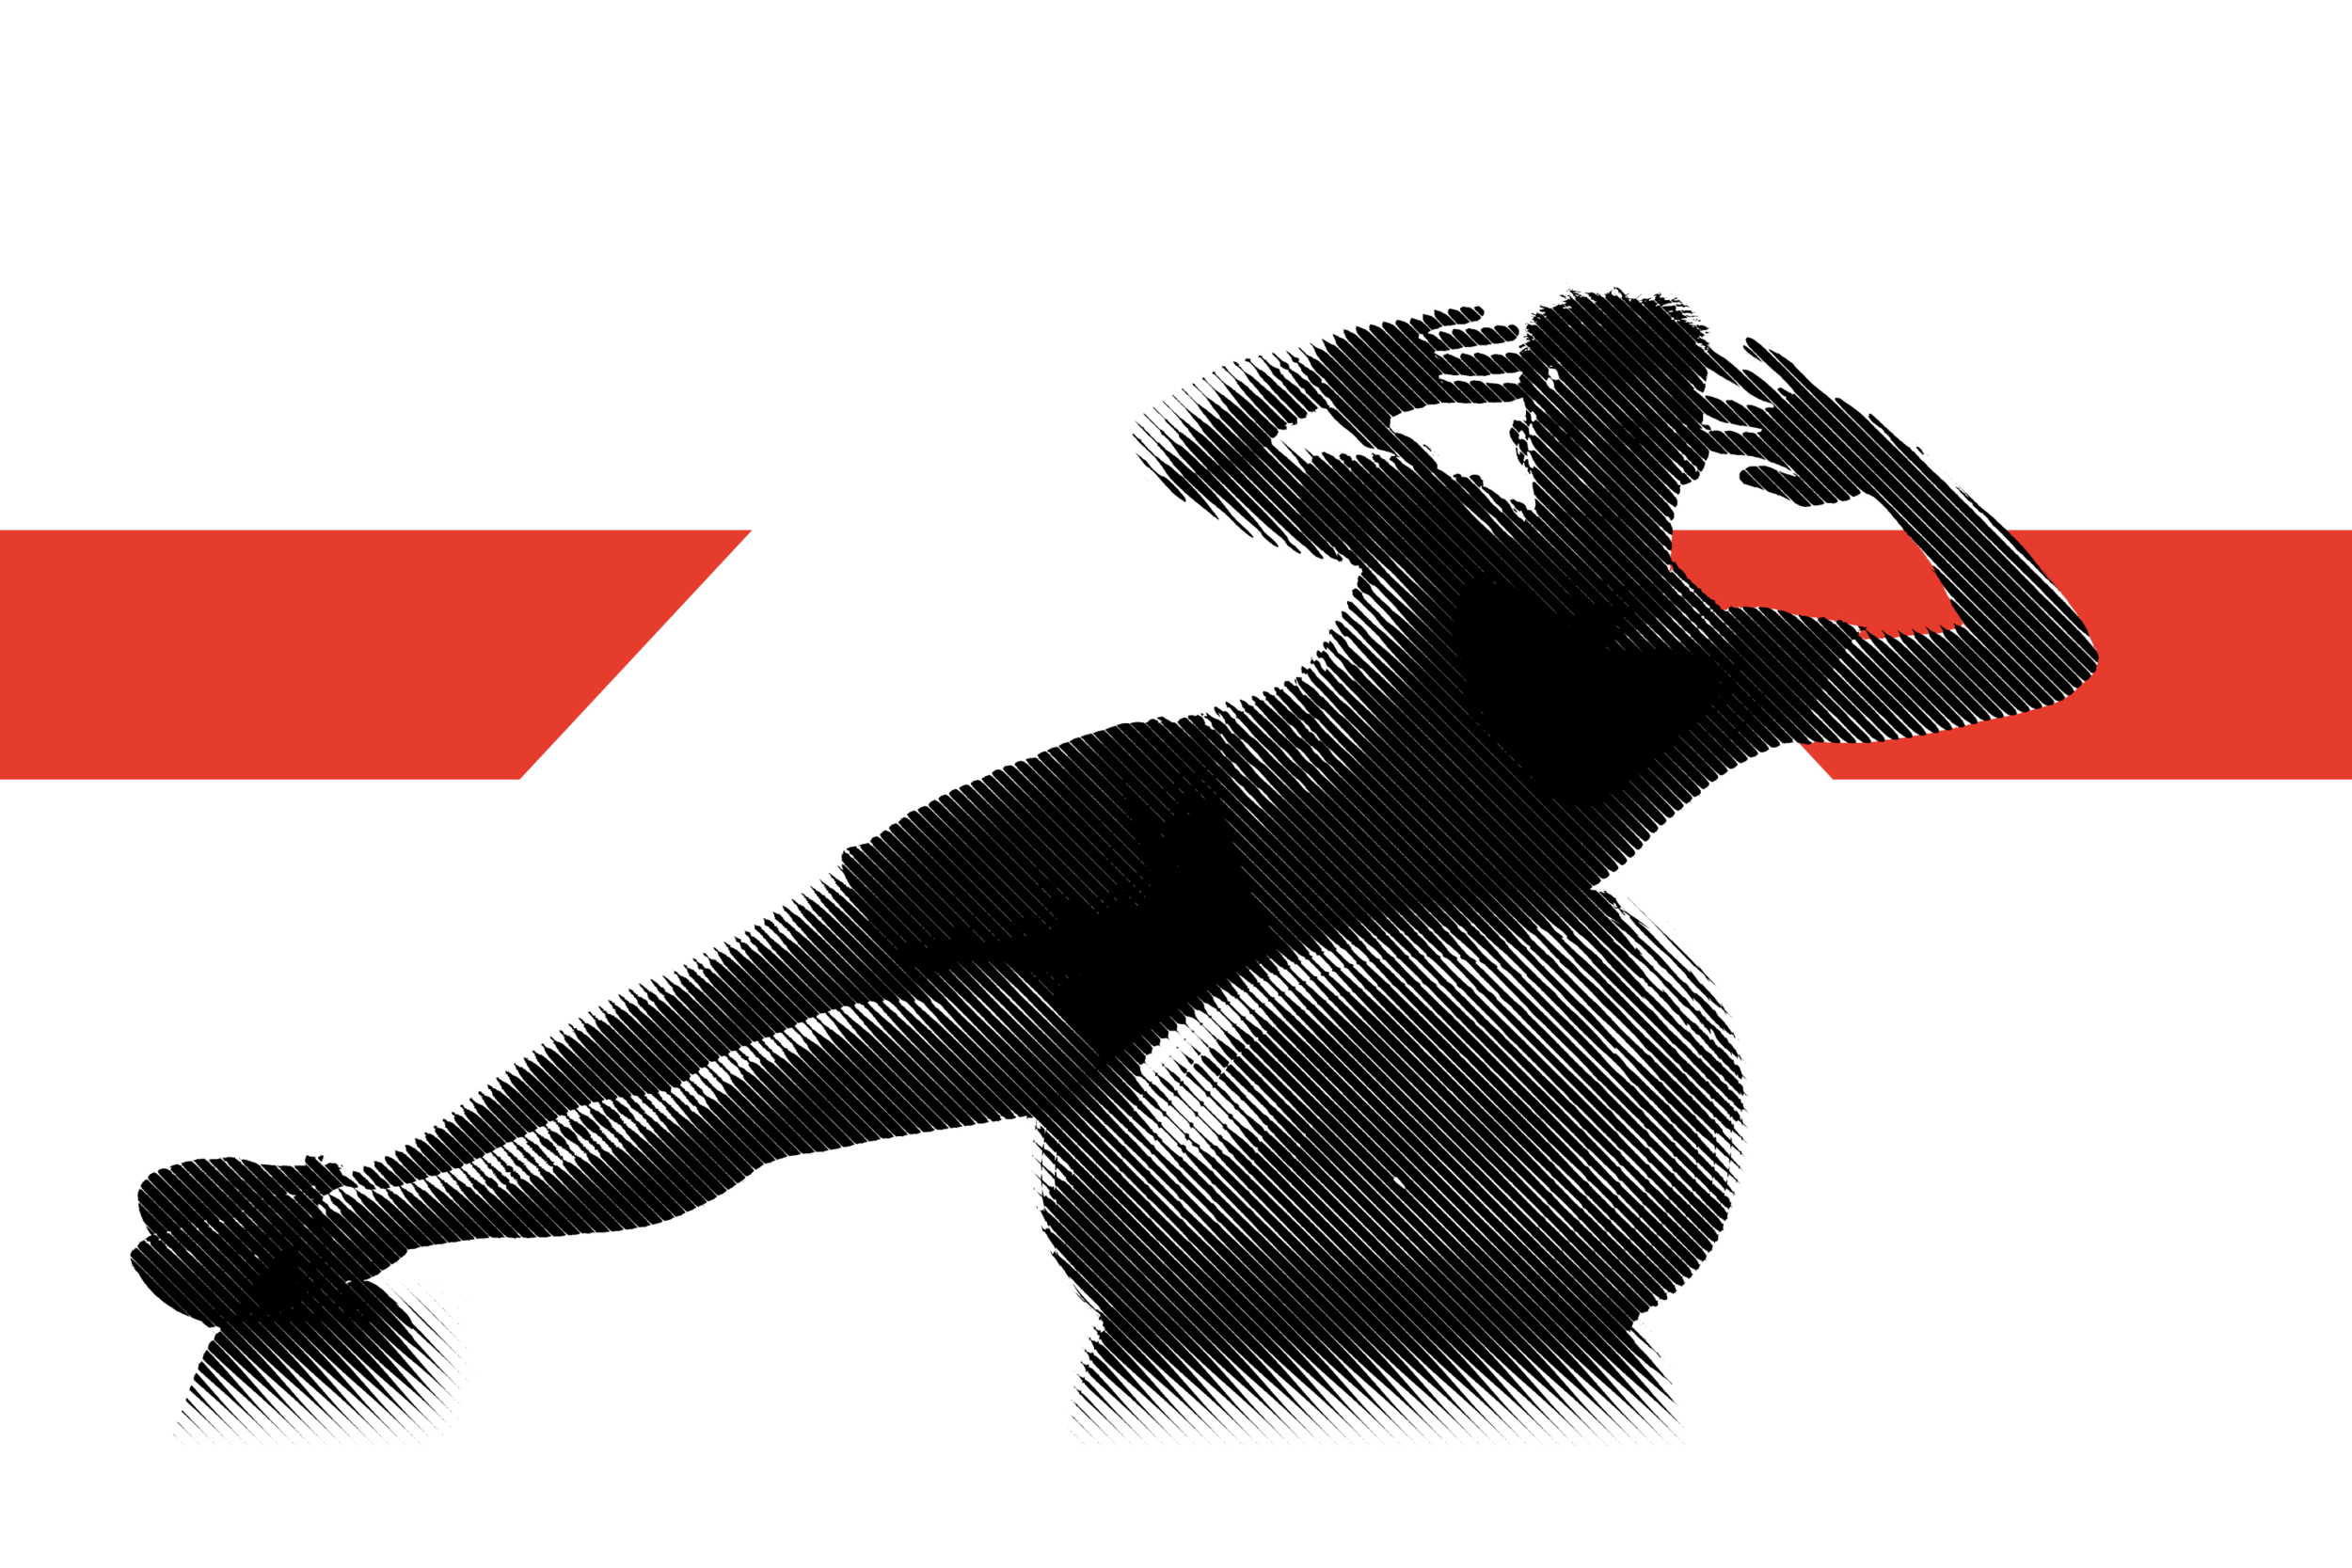 man-doing-side-crunch-on-exercise-ball.png